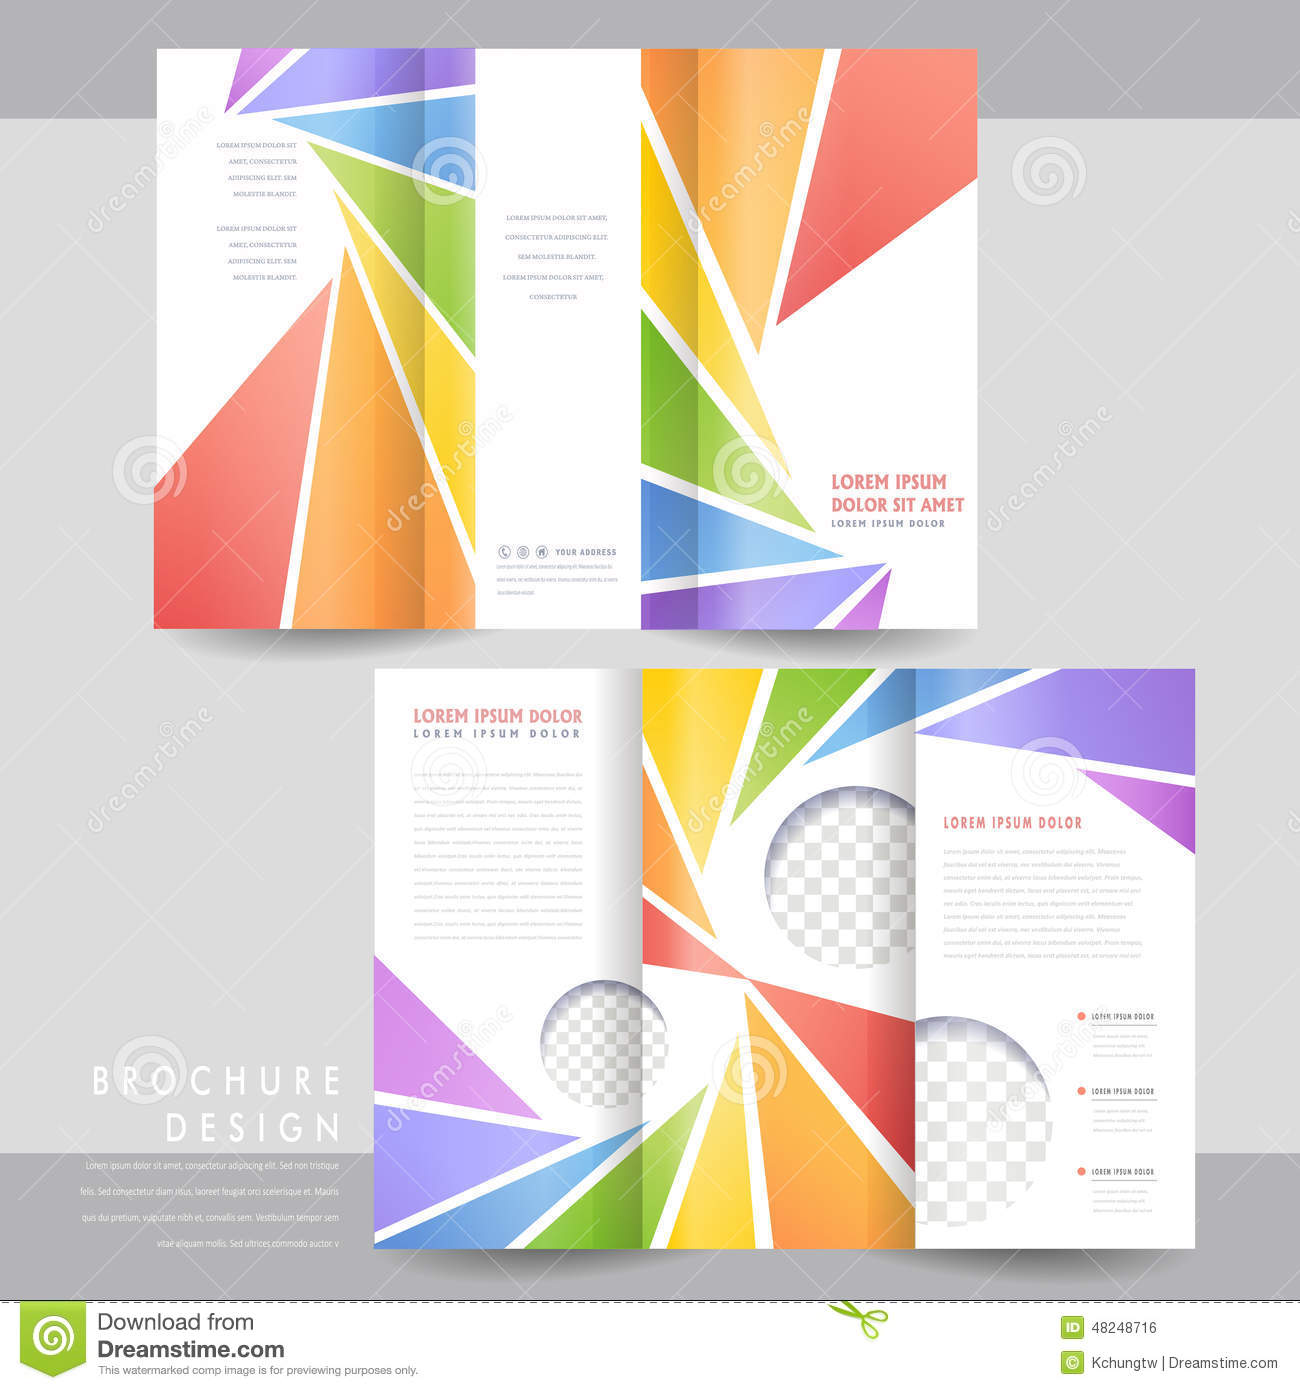 design a brochure free templates - colorful tri fold brochure template design stock vector